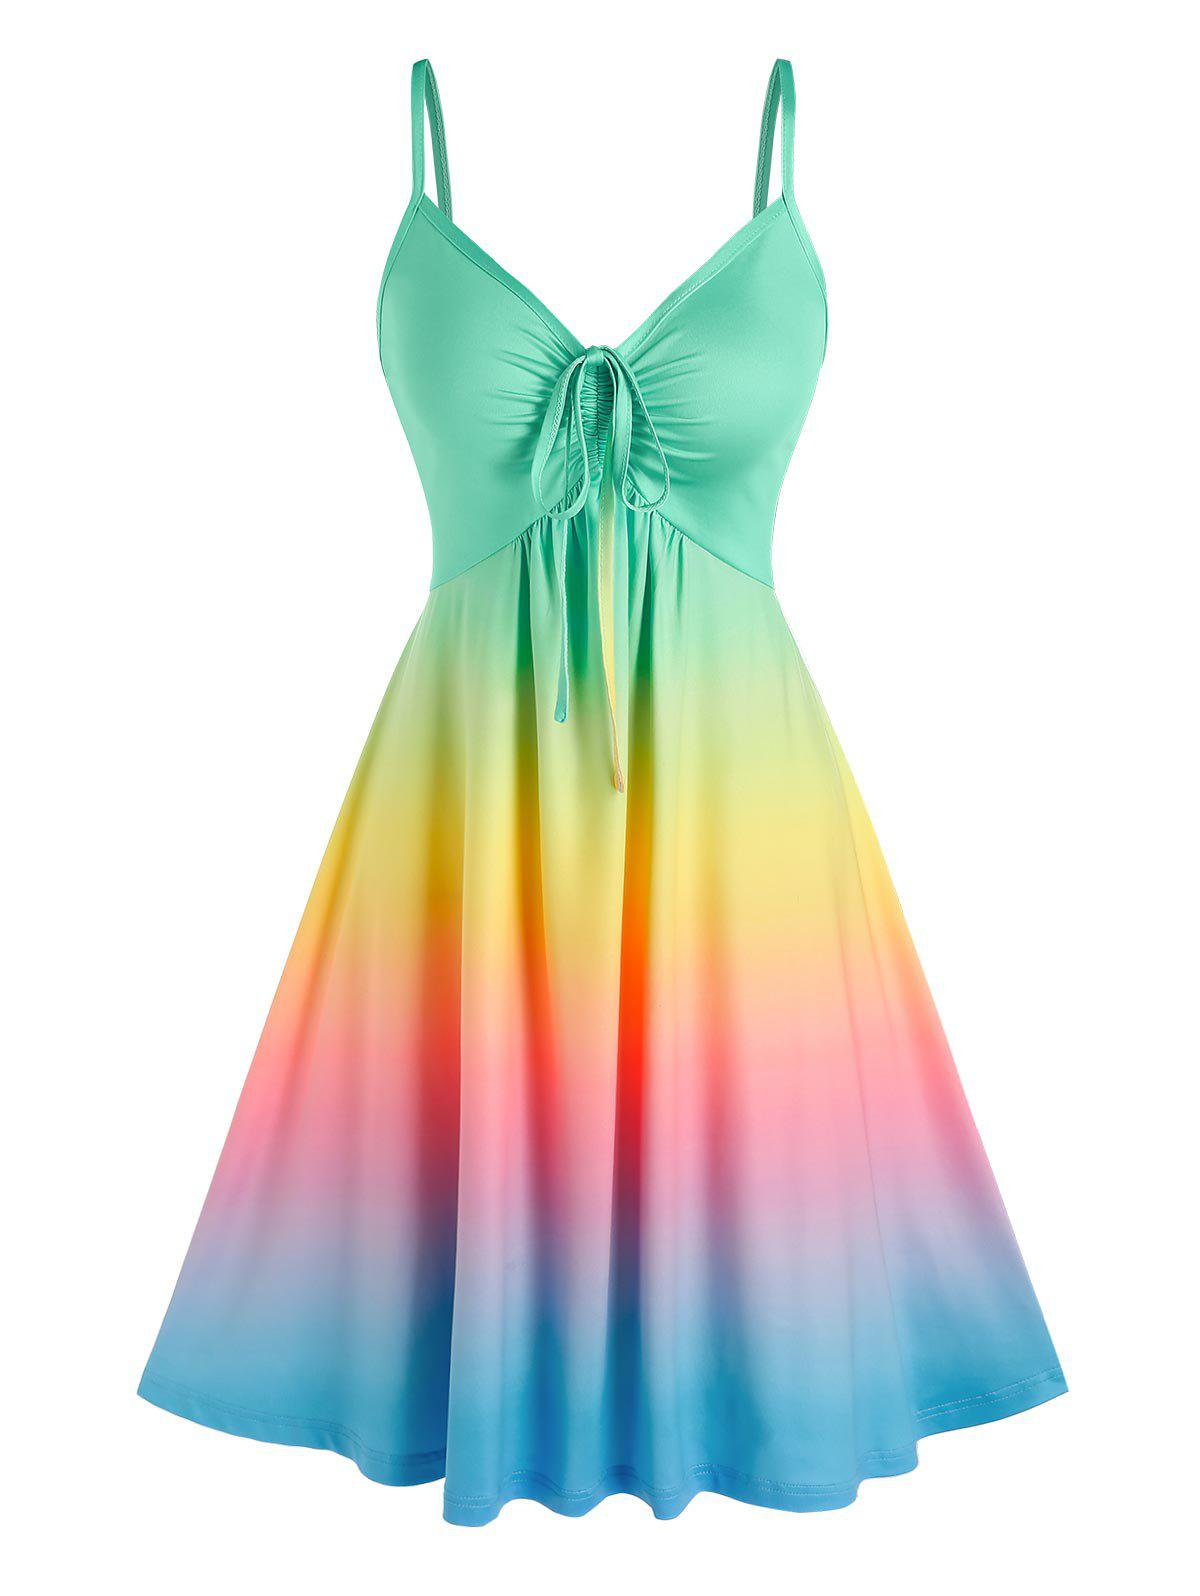 Cinched Rainbow Color Ombre Slip Dress - multicolor M